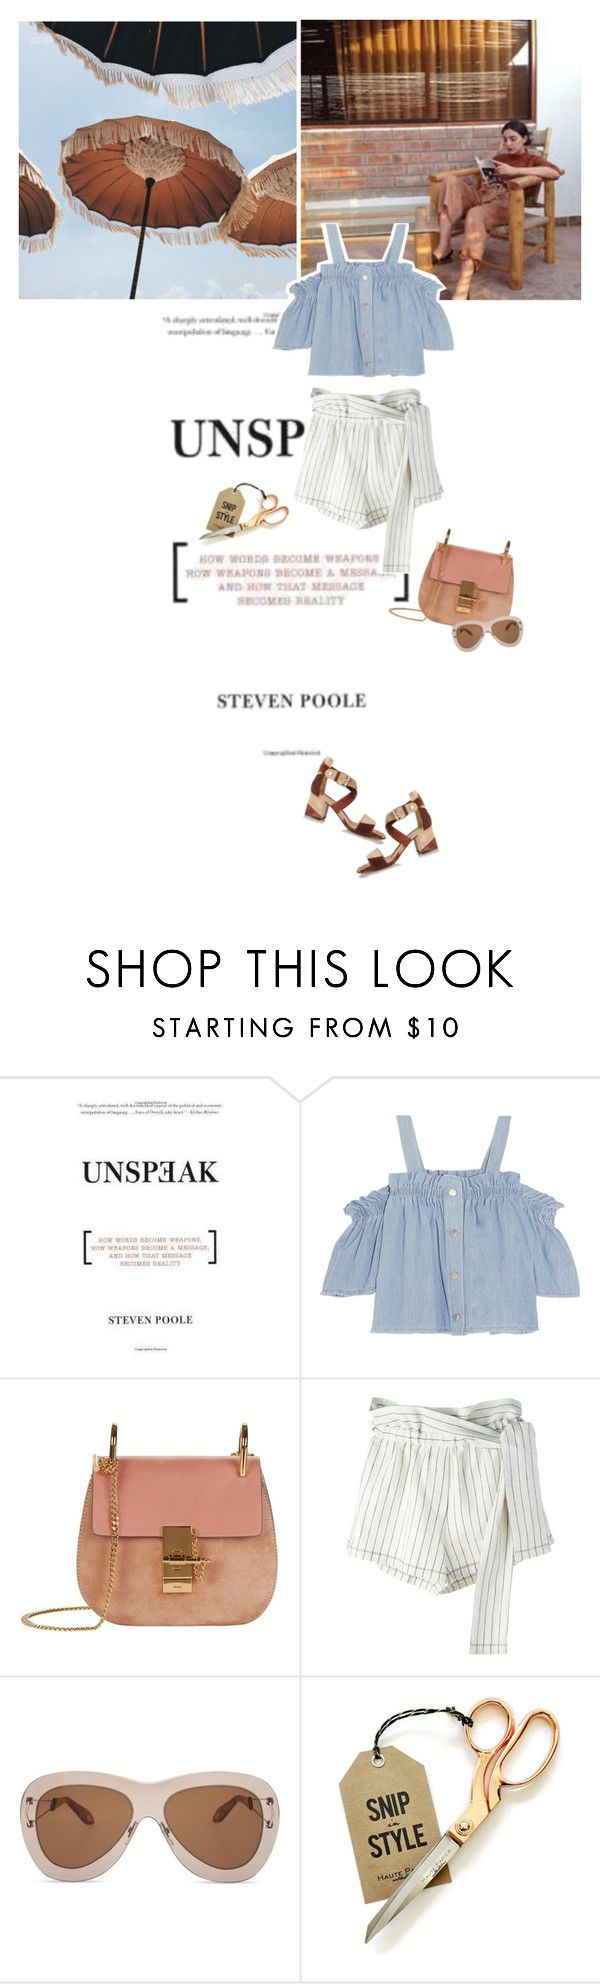 """""""Come Down On Me"""" by valentina-kochur ❤ liked on Polyvore featuring Poesia, Steve J & Yoni P, Chloé, 3.1 Phillip Lim, Givenchy and Gianvito Rossi"""